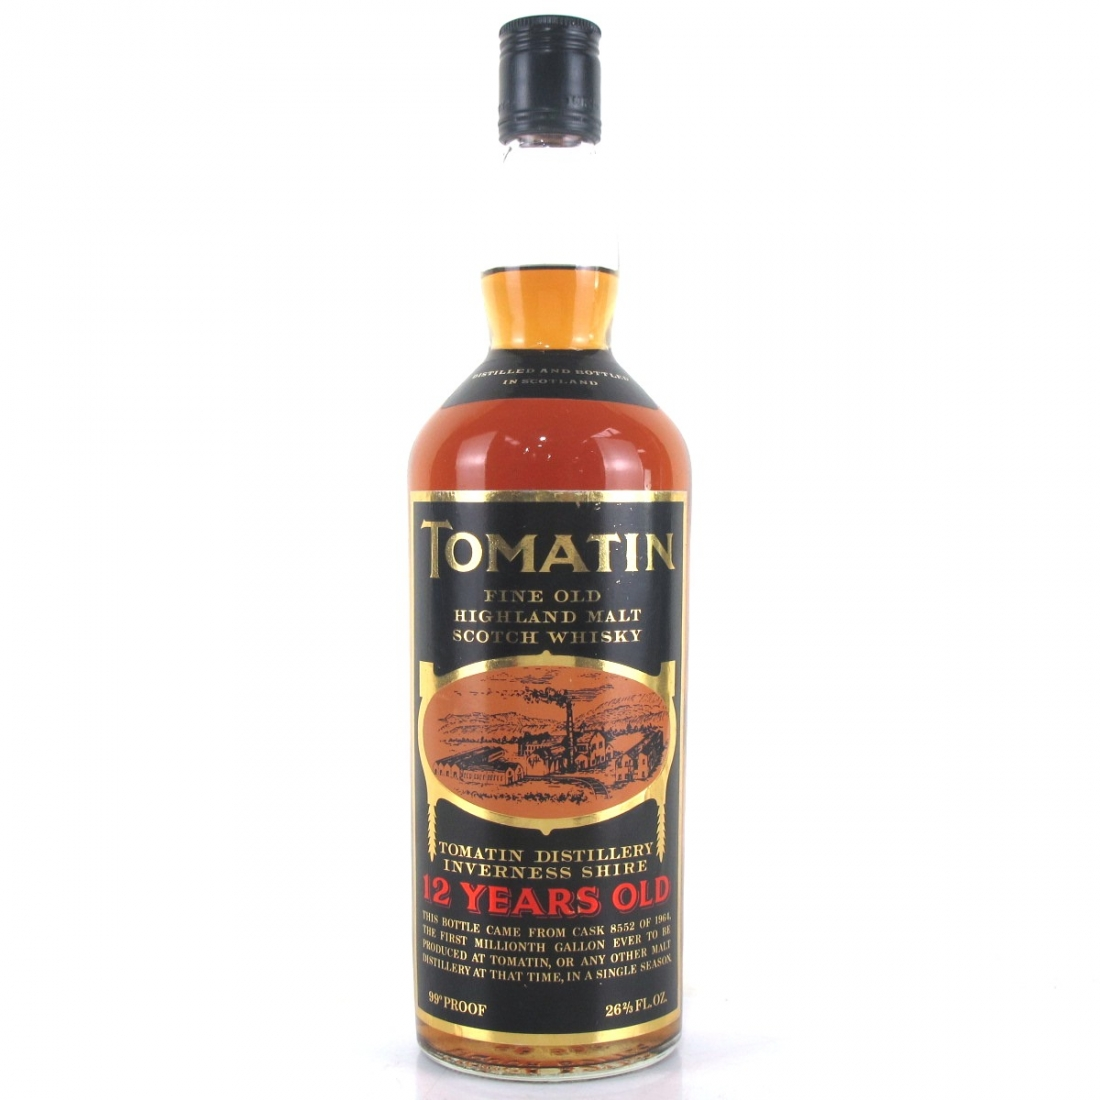 Tomatin 1964 Single Cask 12 Year Old #8552 / First Millionth Gallon